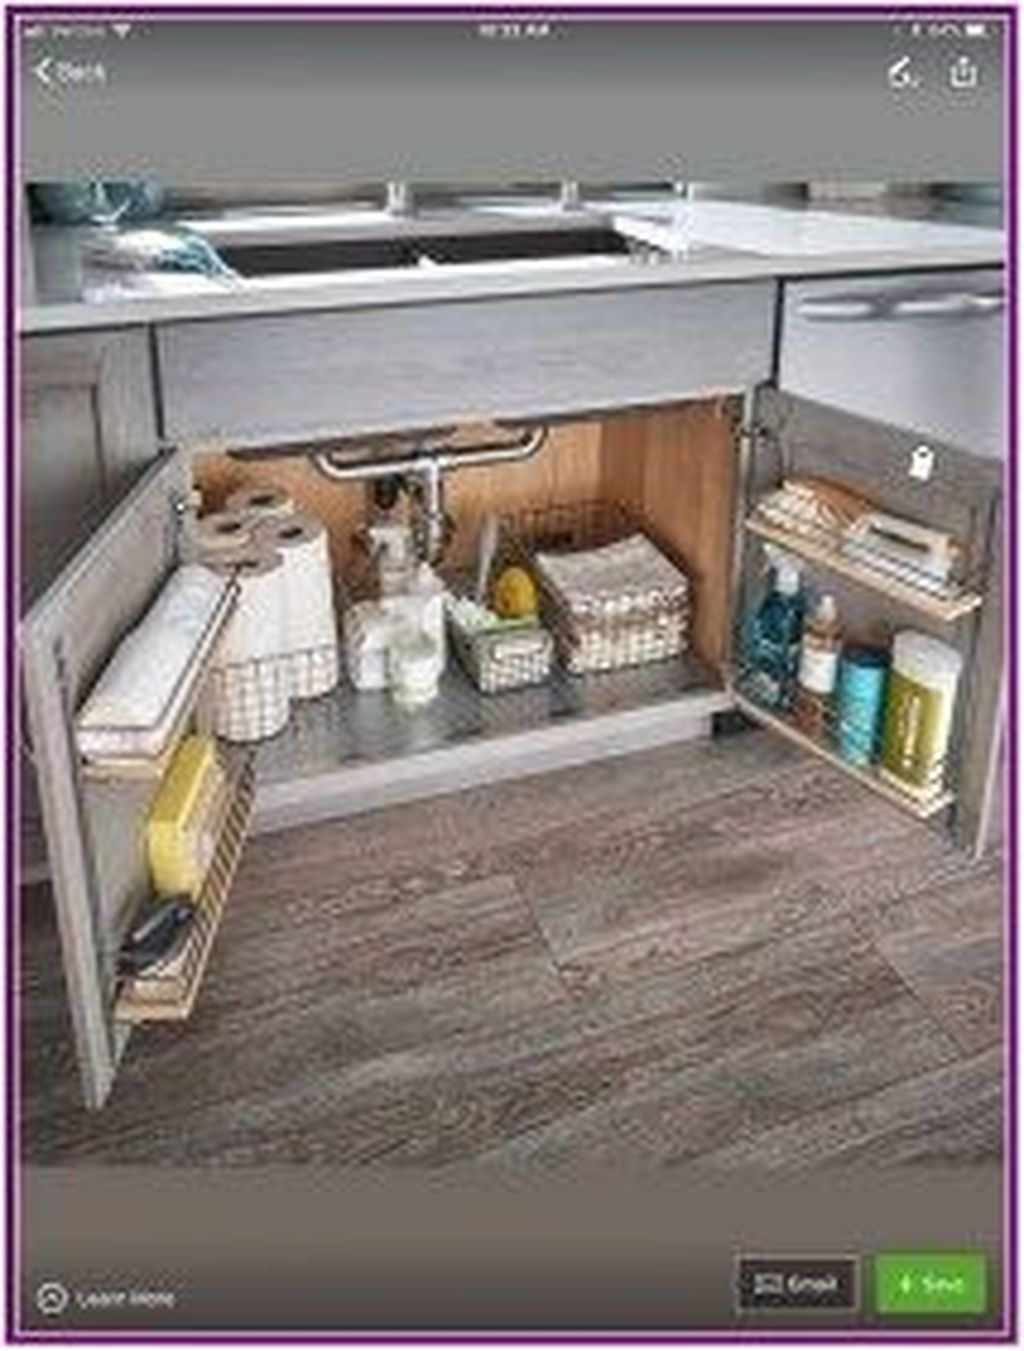 Affordable Kitchen Organization Ideas On A Budget 01